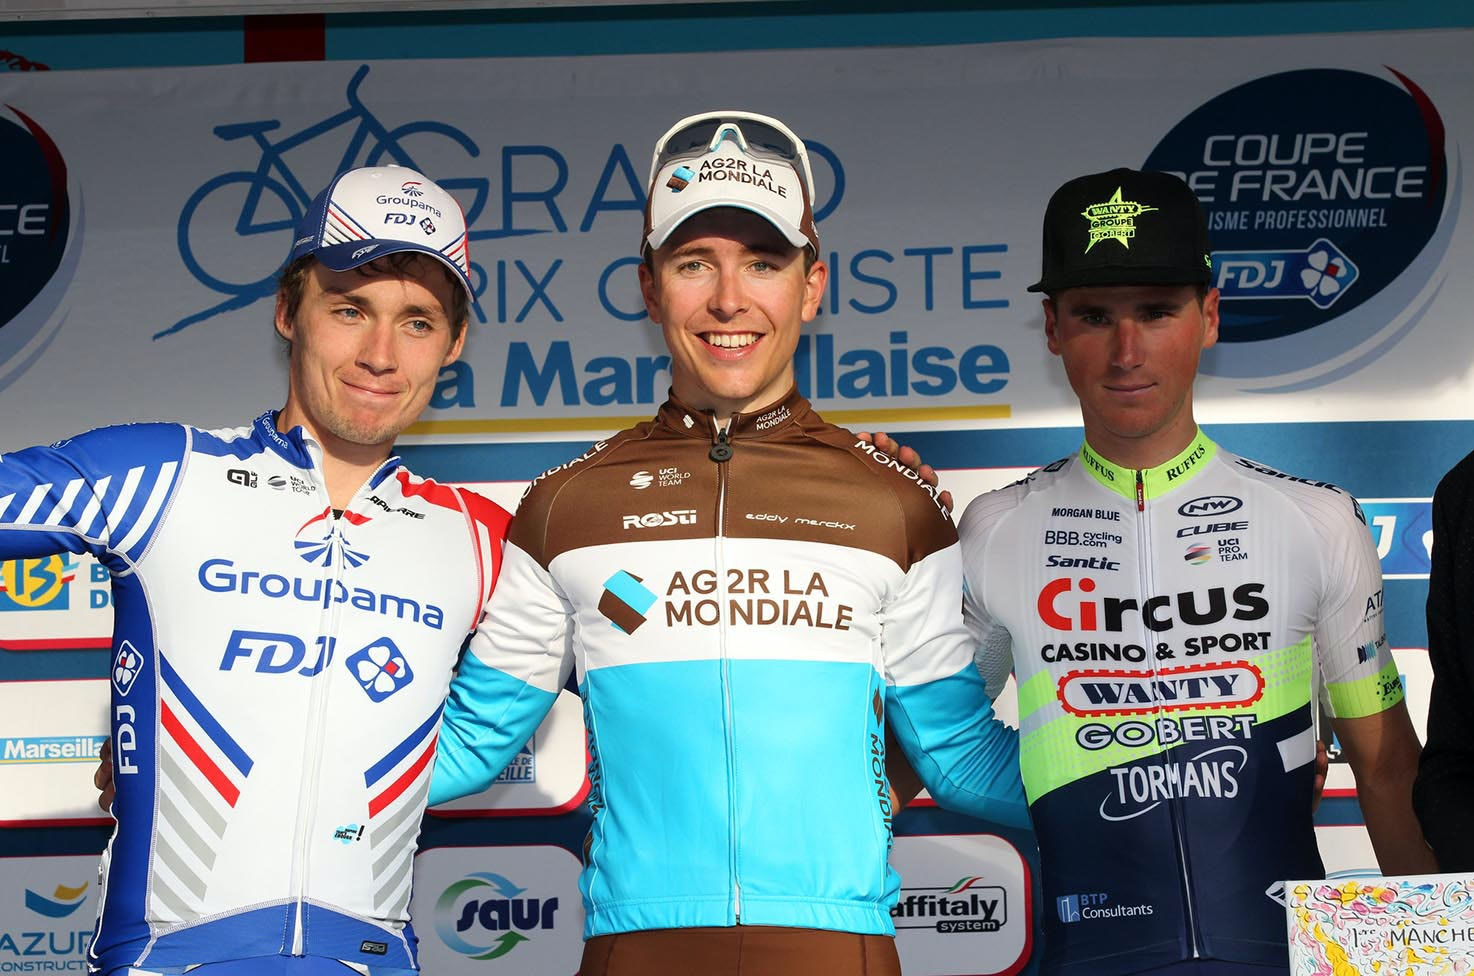 ROAD: A GREAT VICTORY AT THE EUROPEAN DEBUT FOR NORTHWAVE